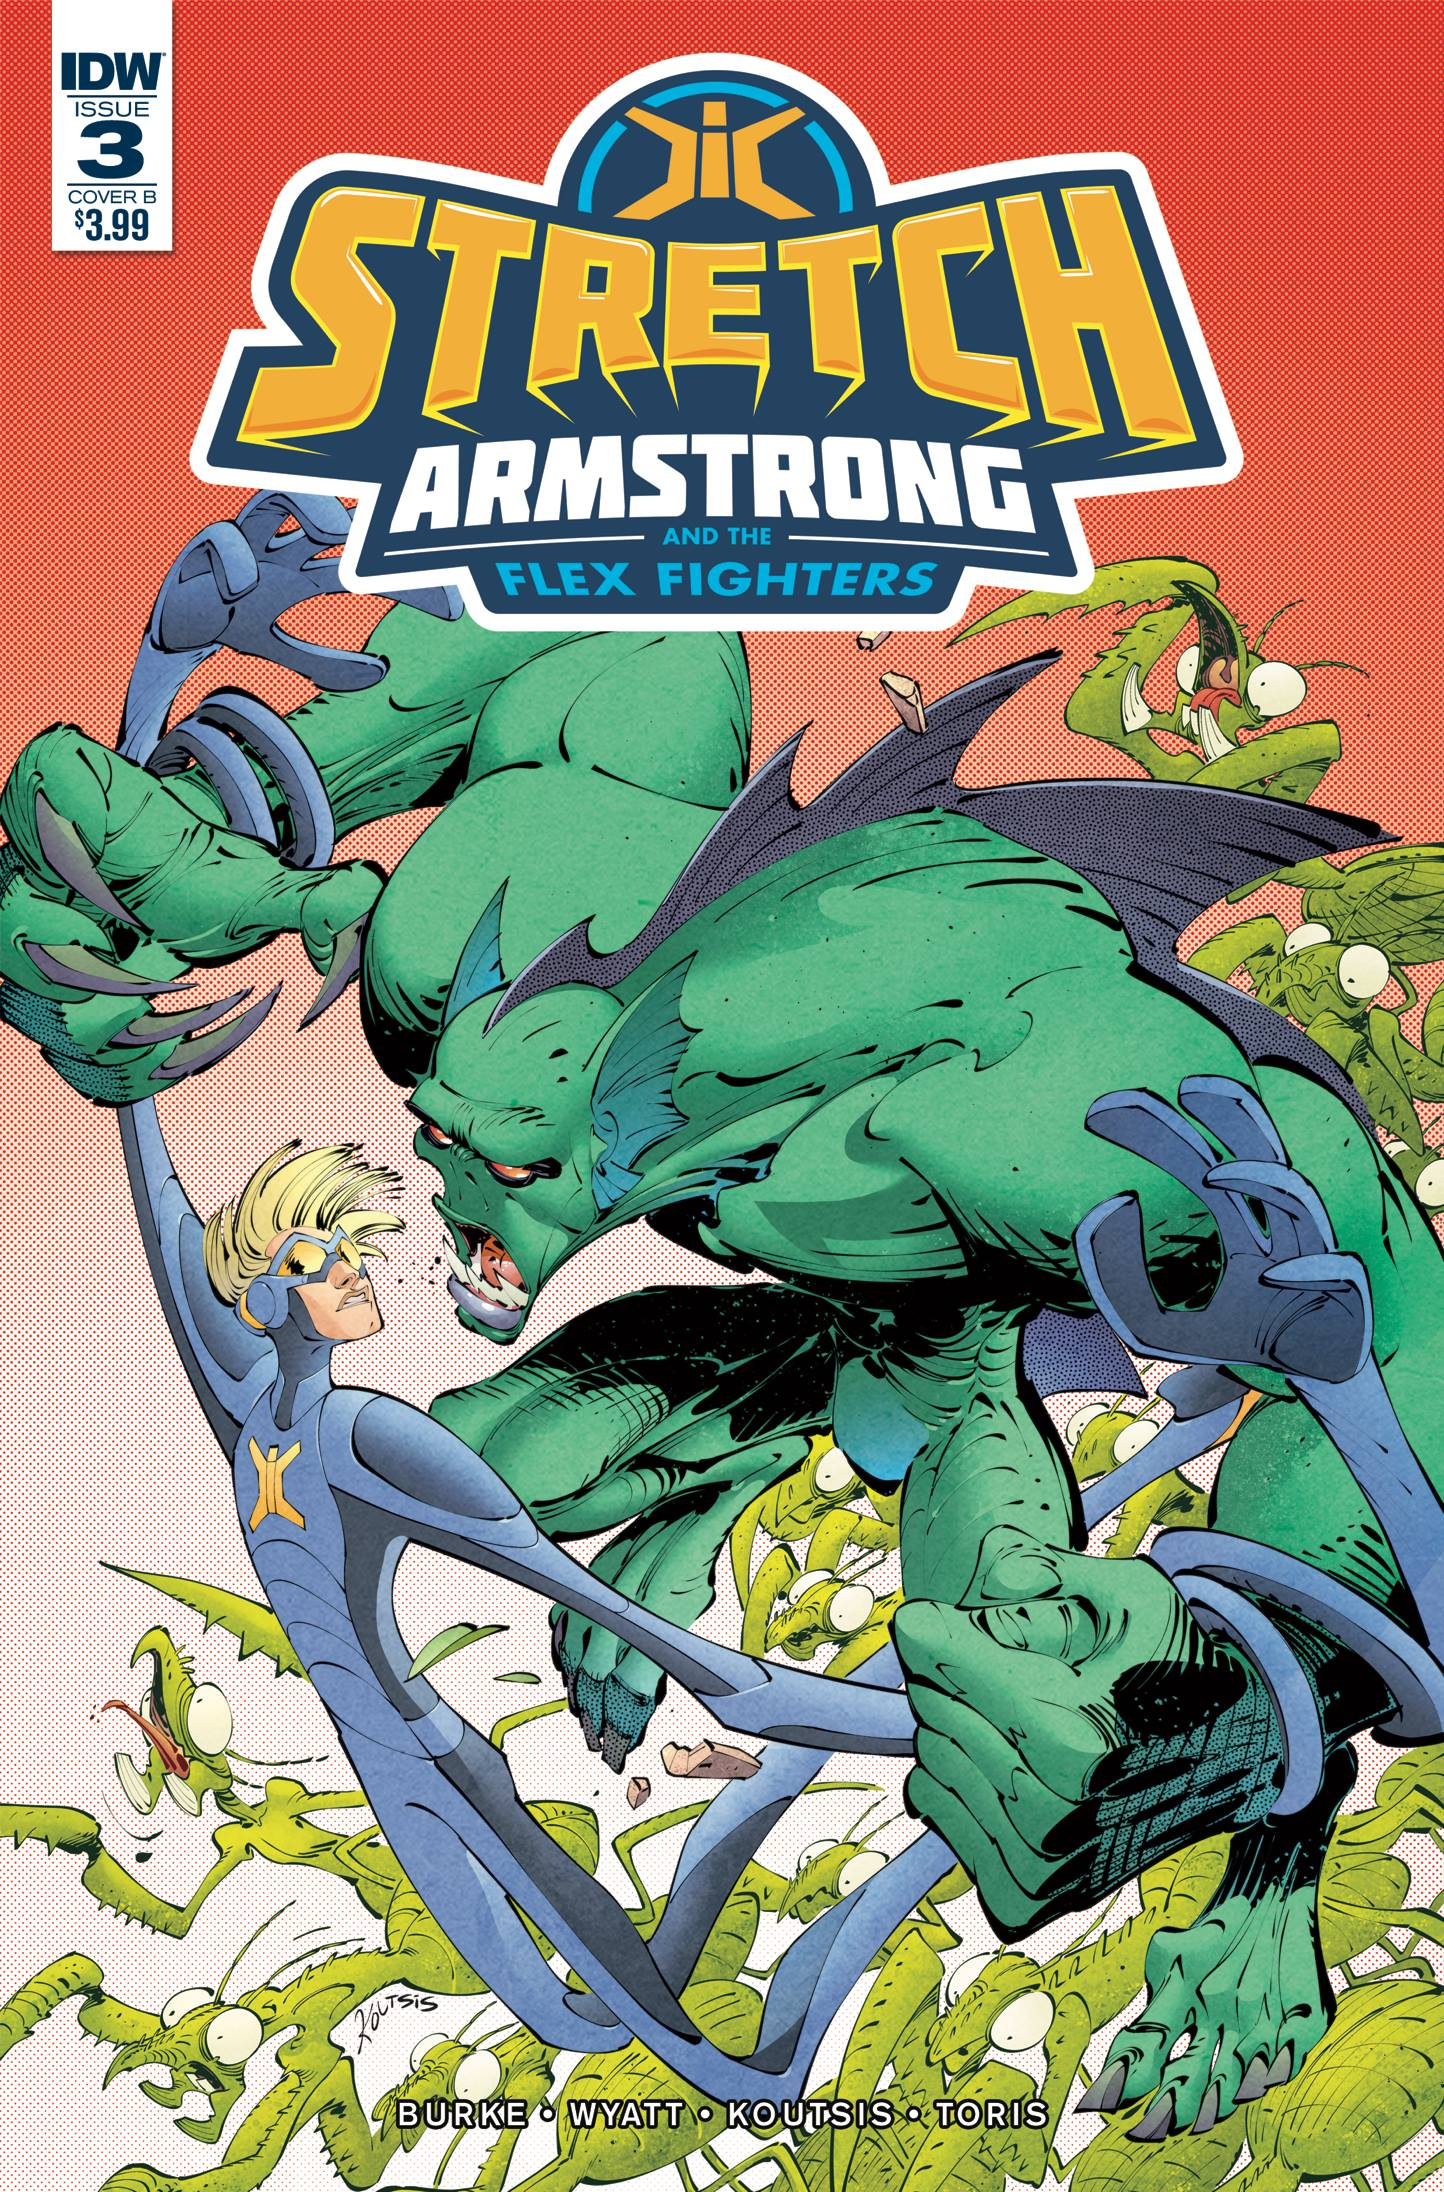 STRETCH ARMSTRONG #3 by IDW